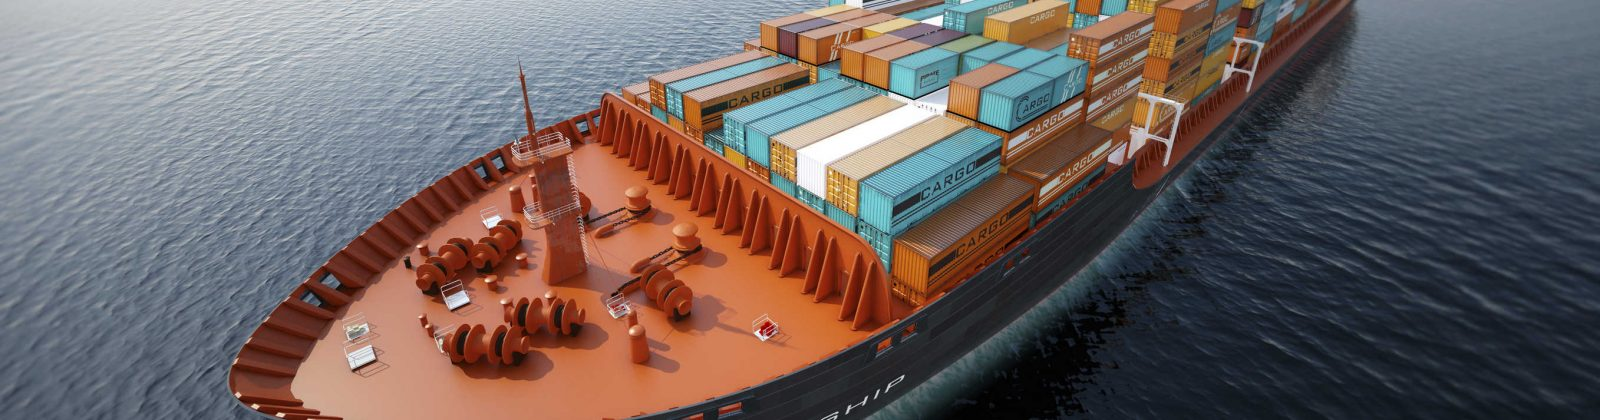 Cargo ship transportation